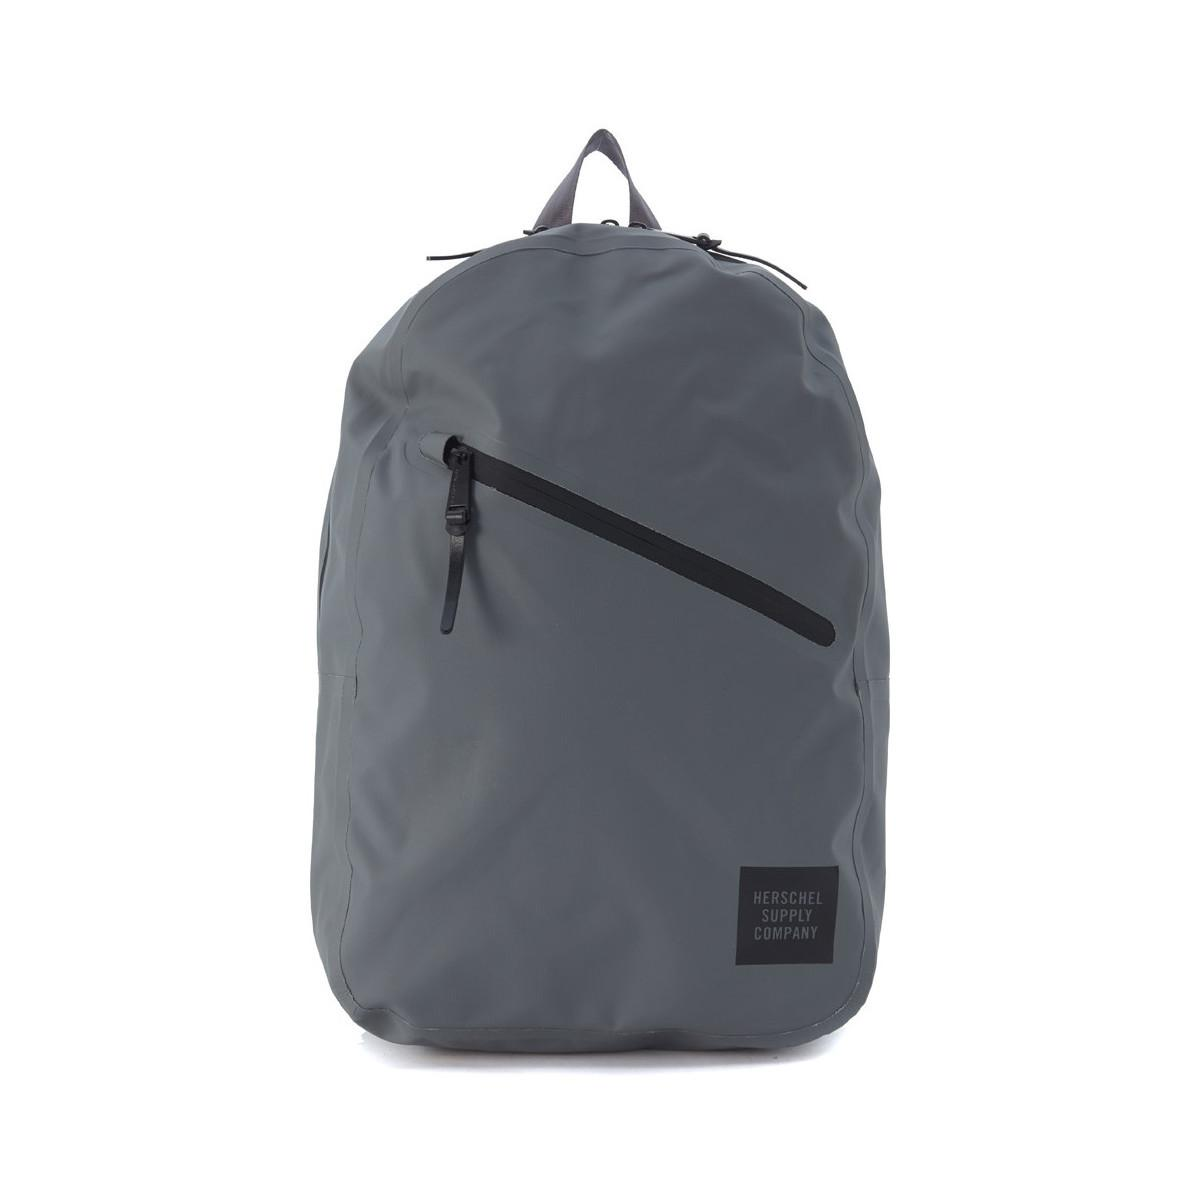 4c45fc781f1 Herschel Supply Co. Hershel Supply Co. Parker Studio Backpack In ...